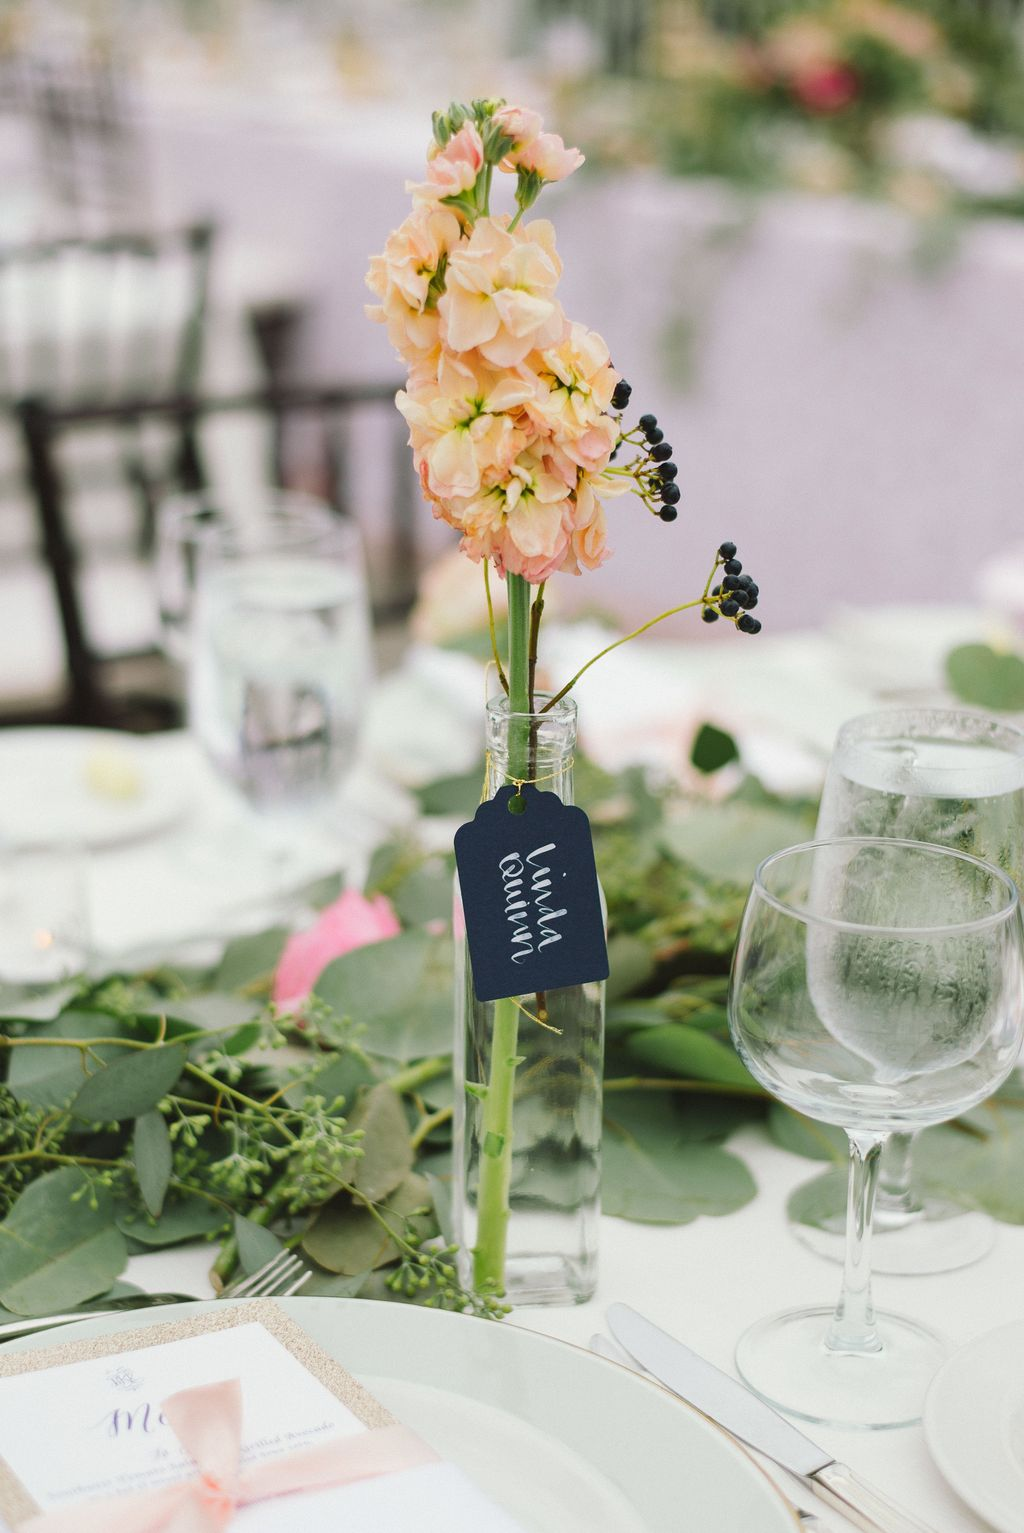 Lovely Bud Vase Centerpiece Decor Ideas For Your Dining Table 10